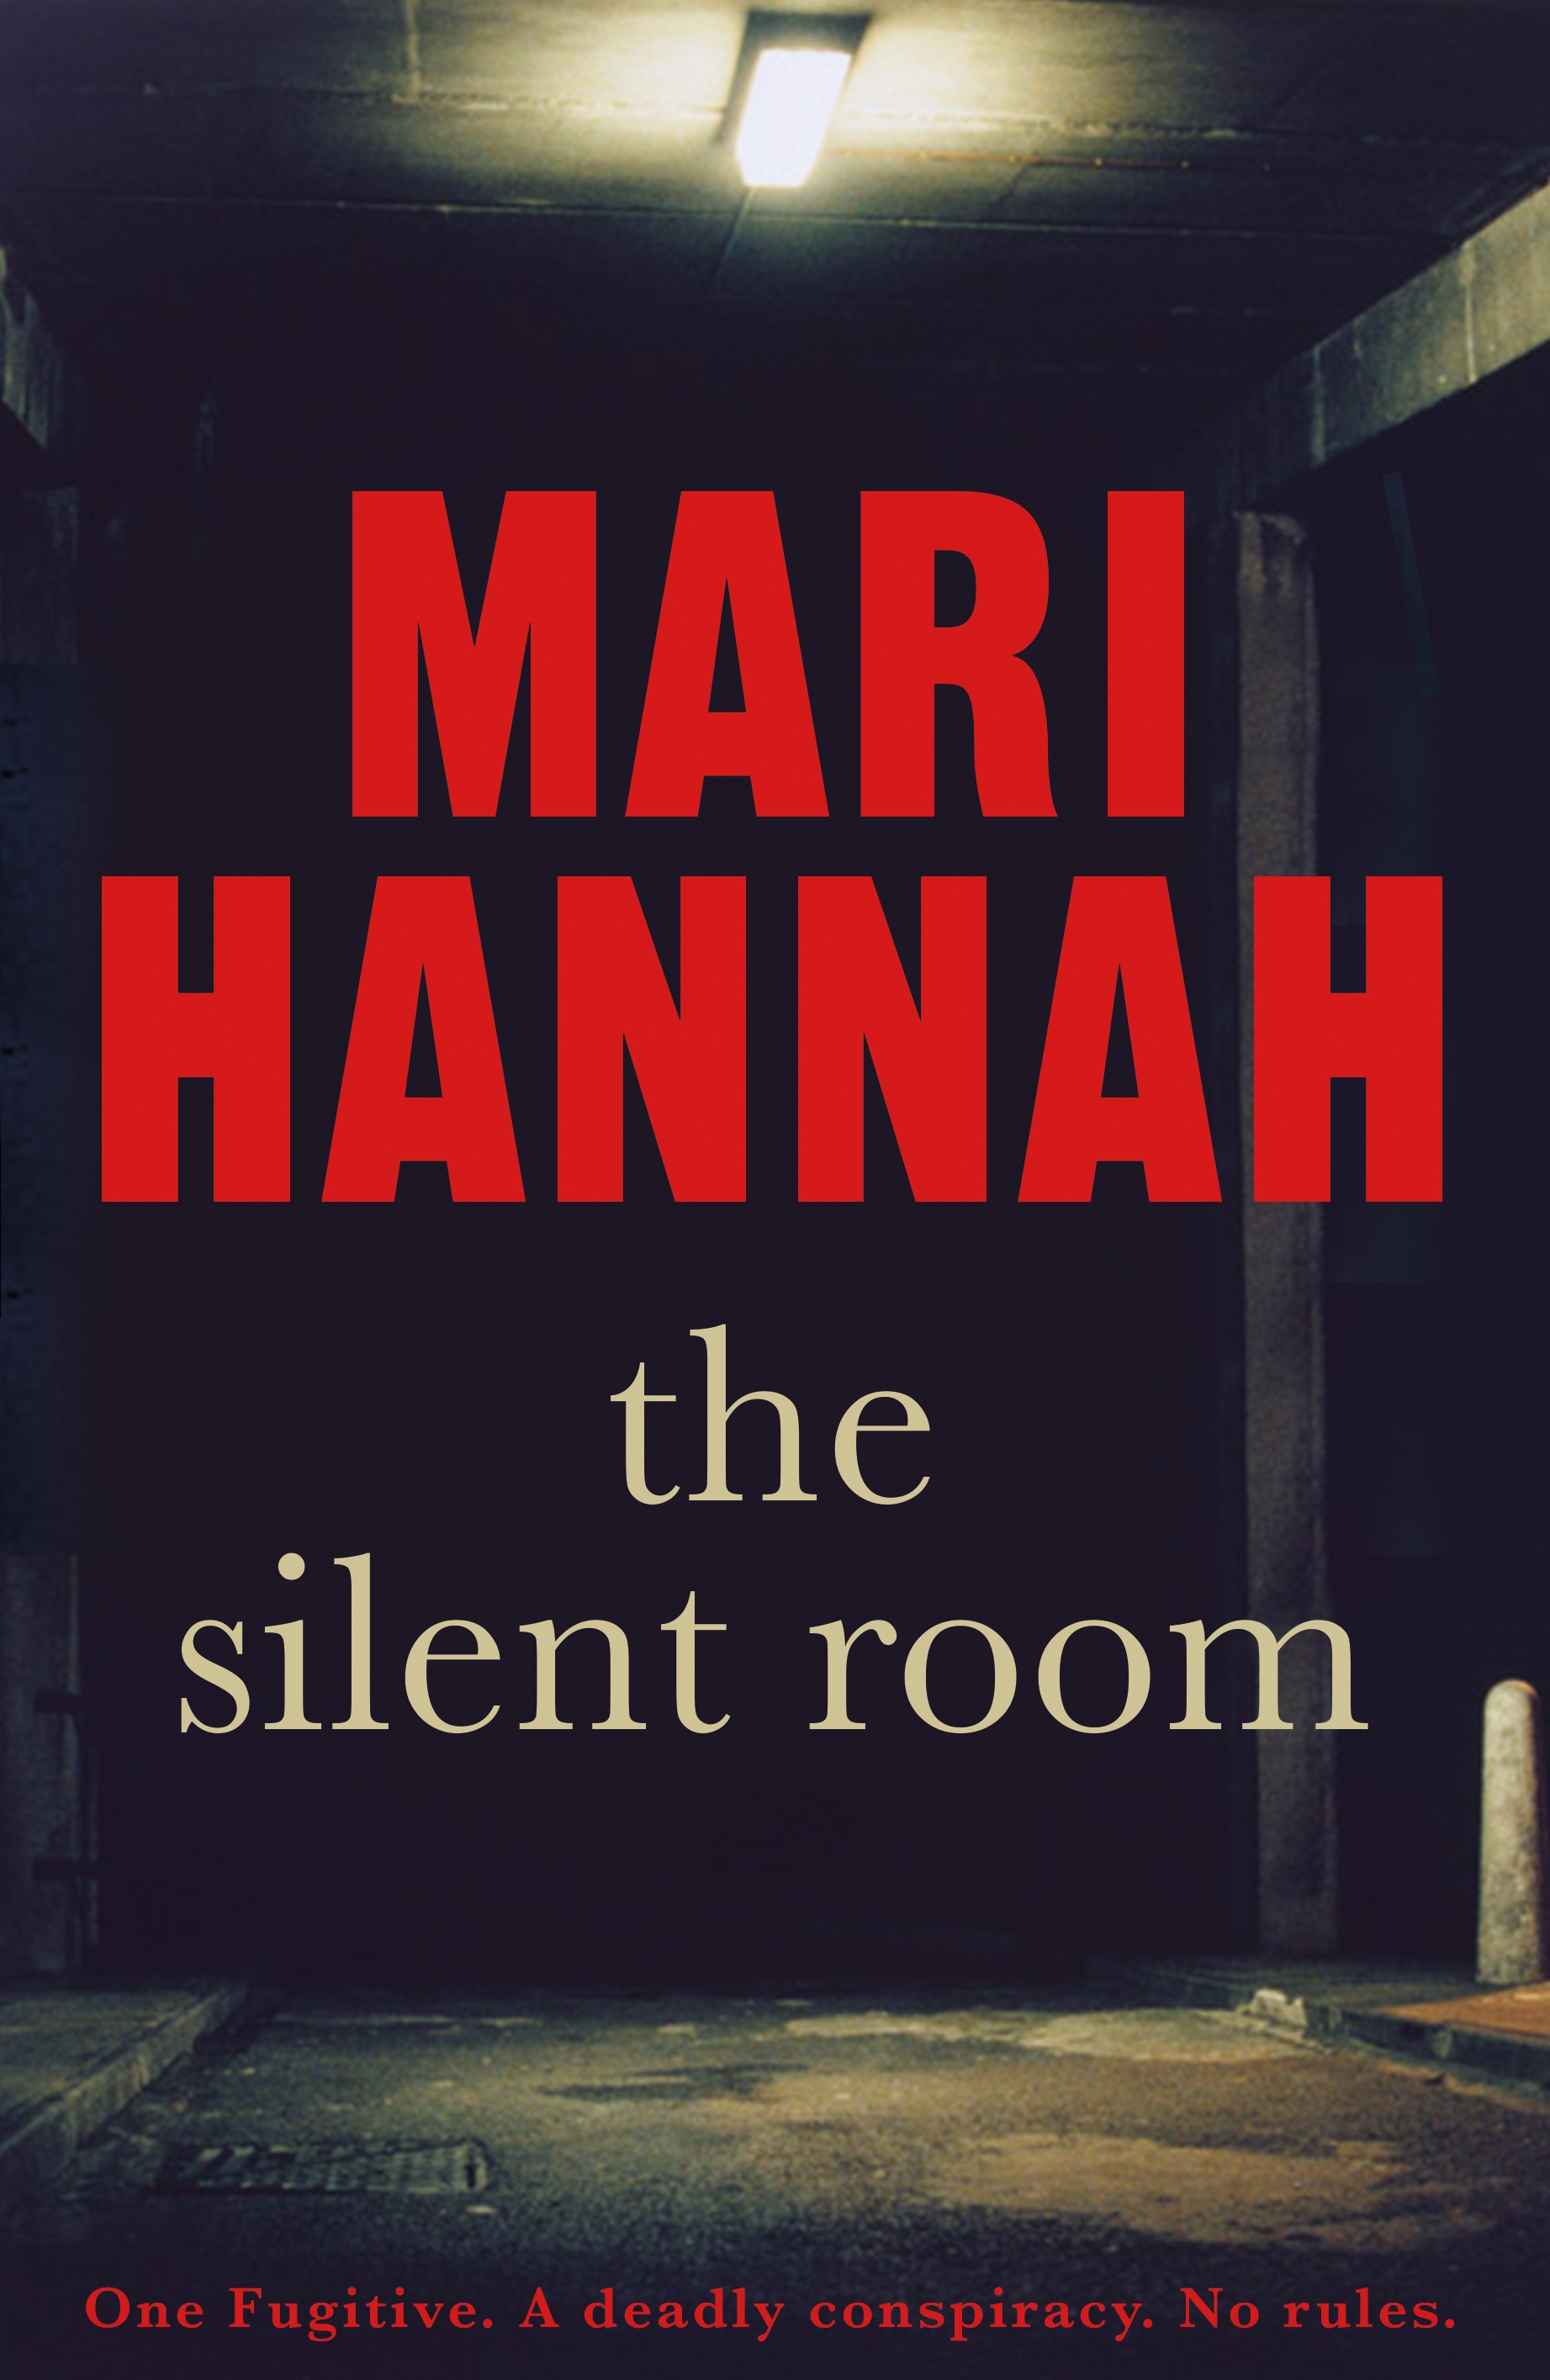 The Silent Room by Mari Hannah